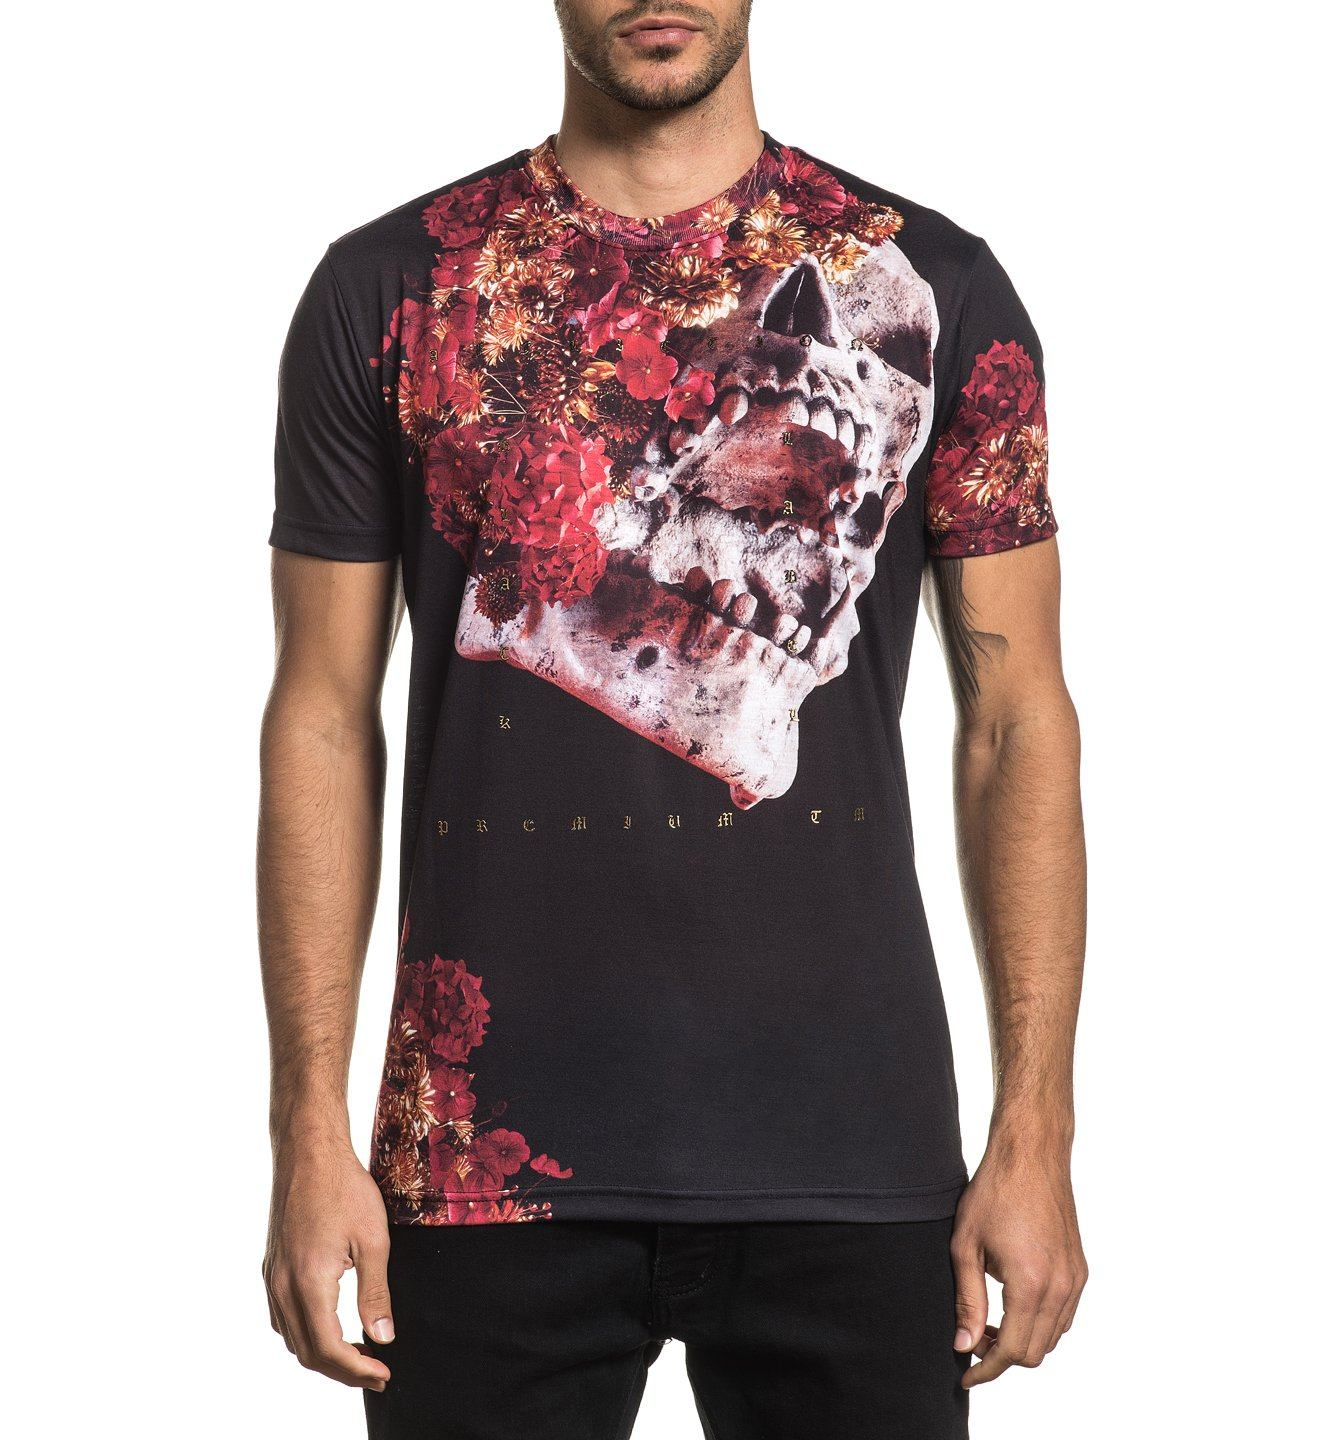 Mens Short Sleeve Tees - Skeleton Flower